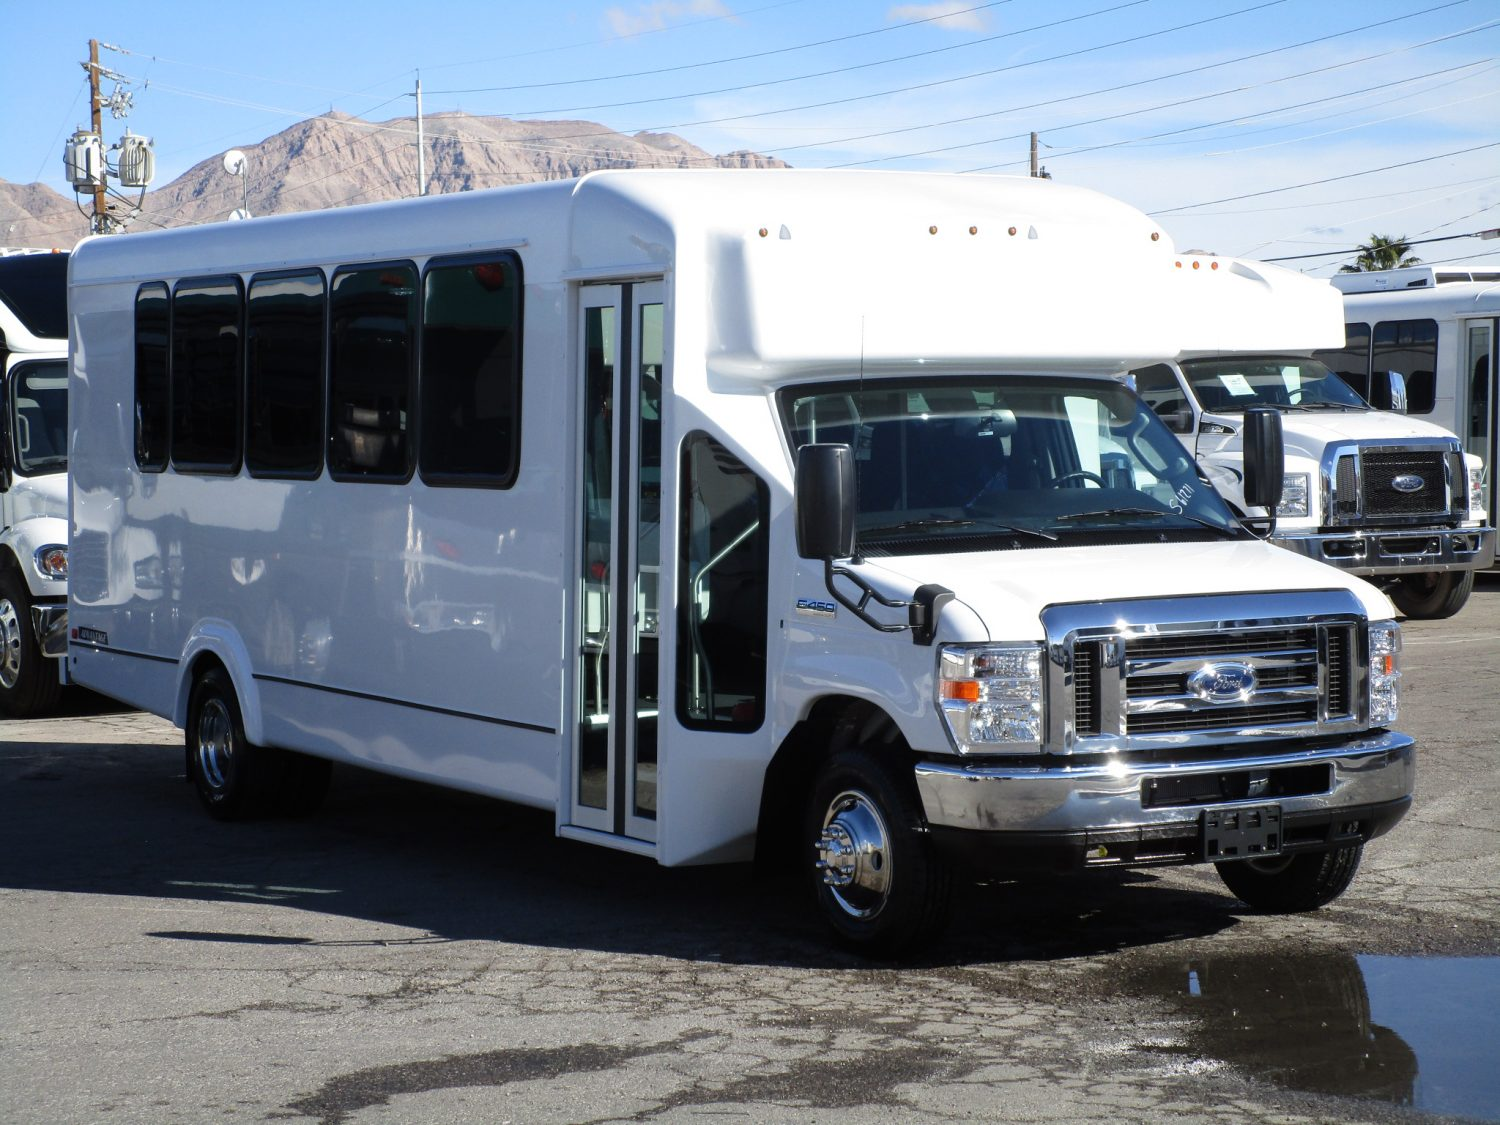 2019 ElDorado Advantage Shuttle Bus Passenger Side Front